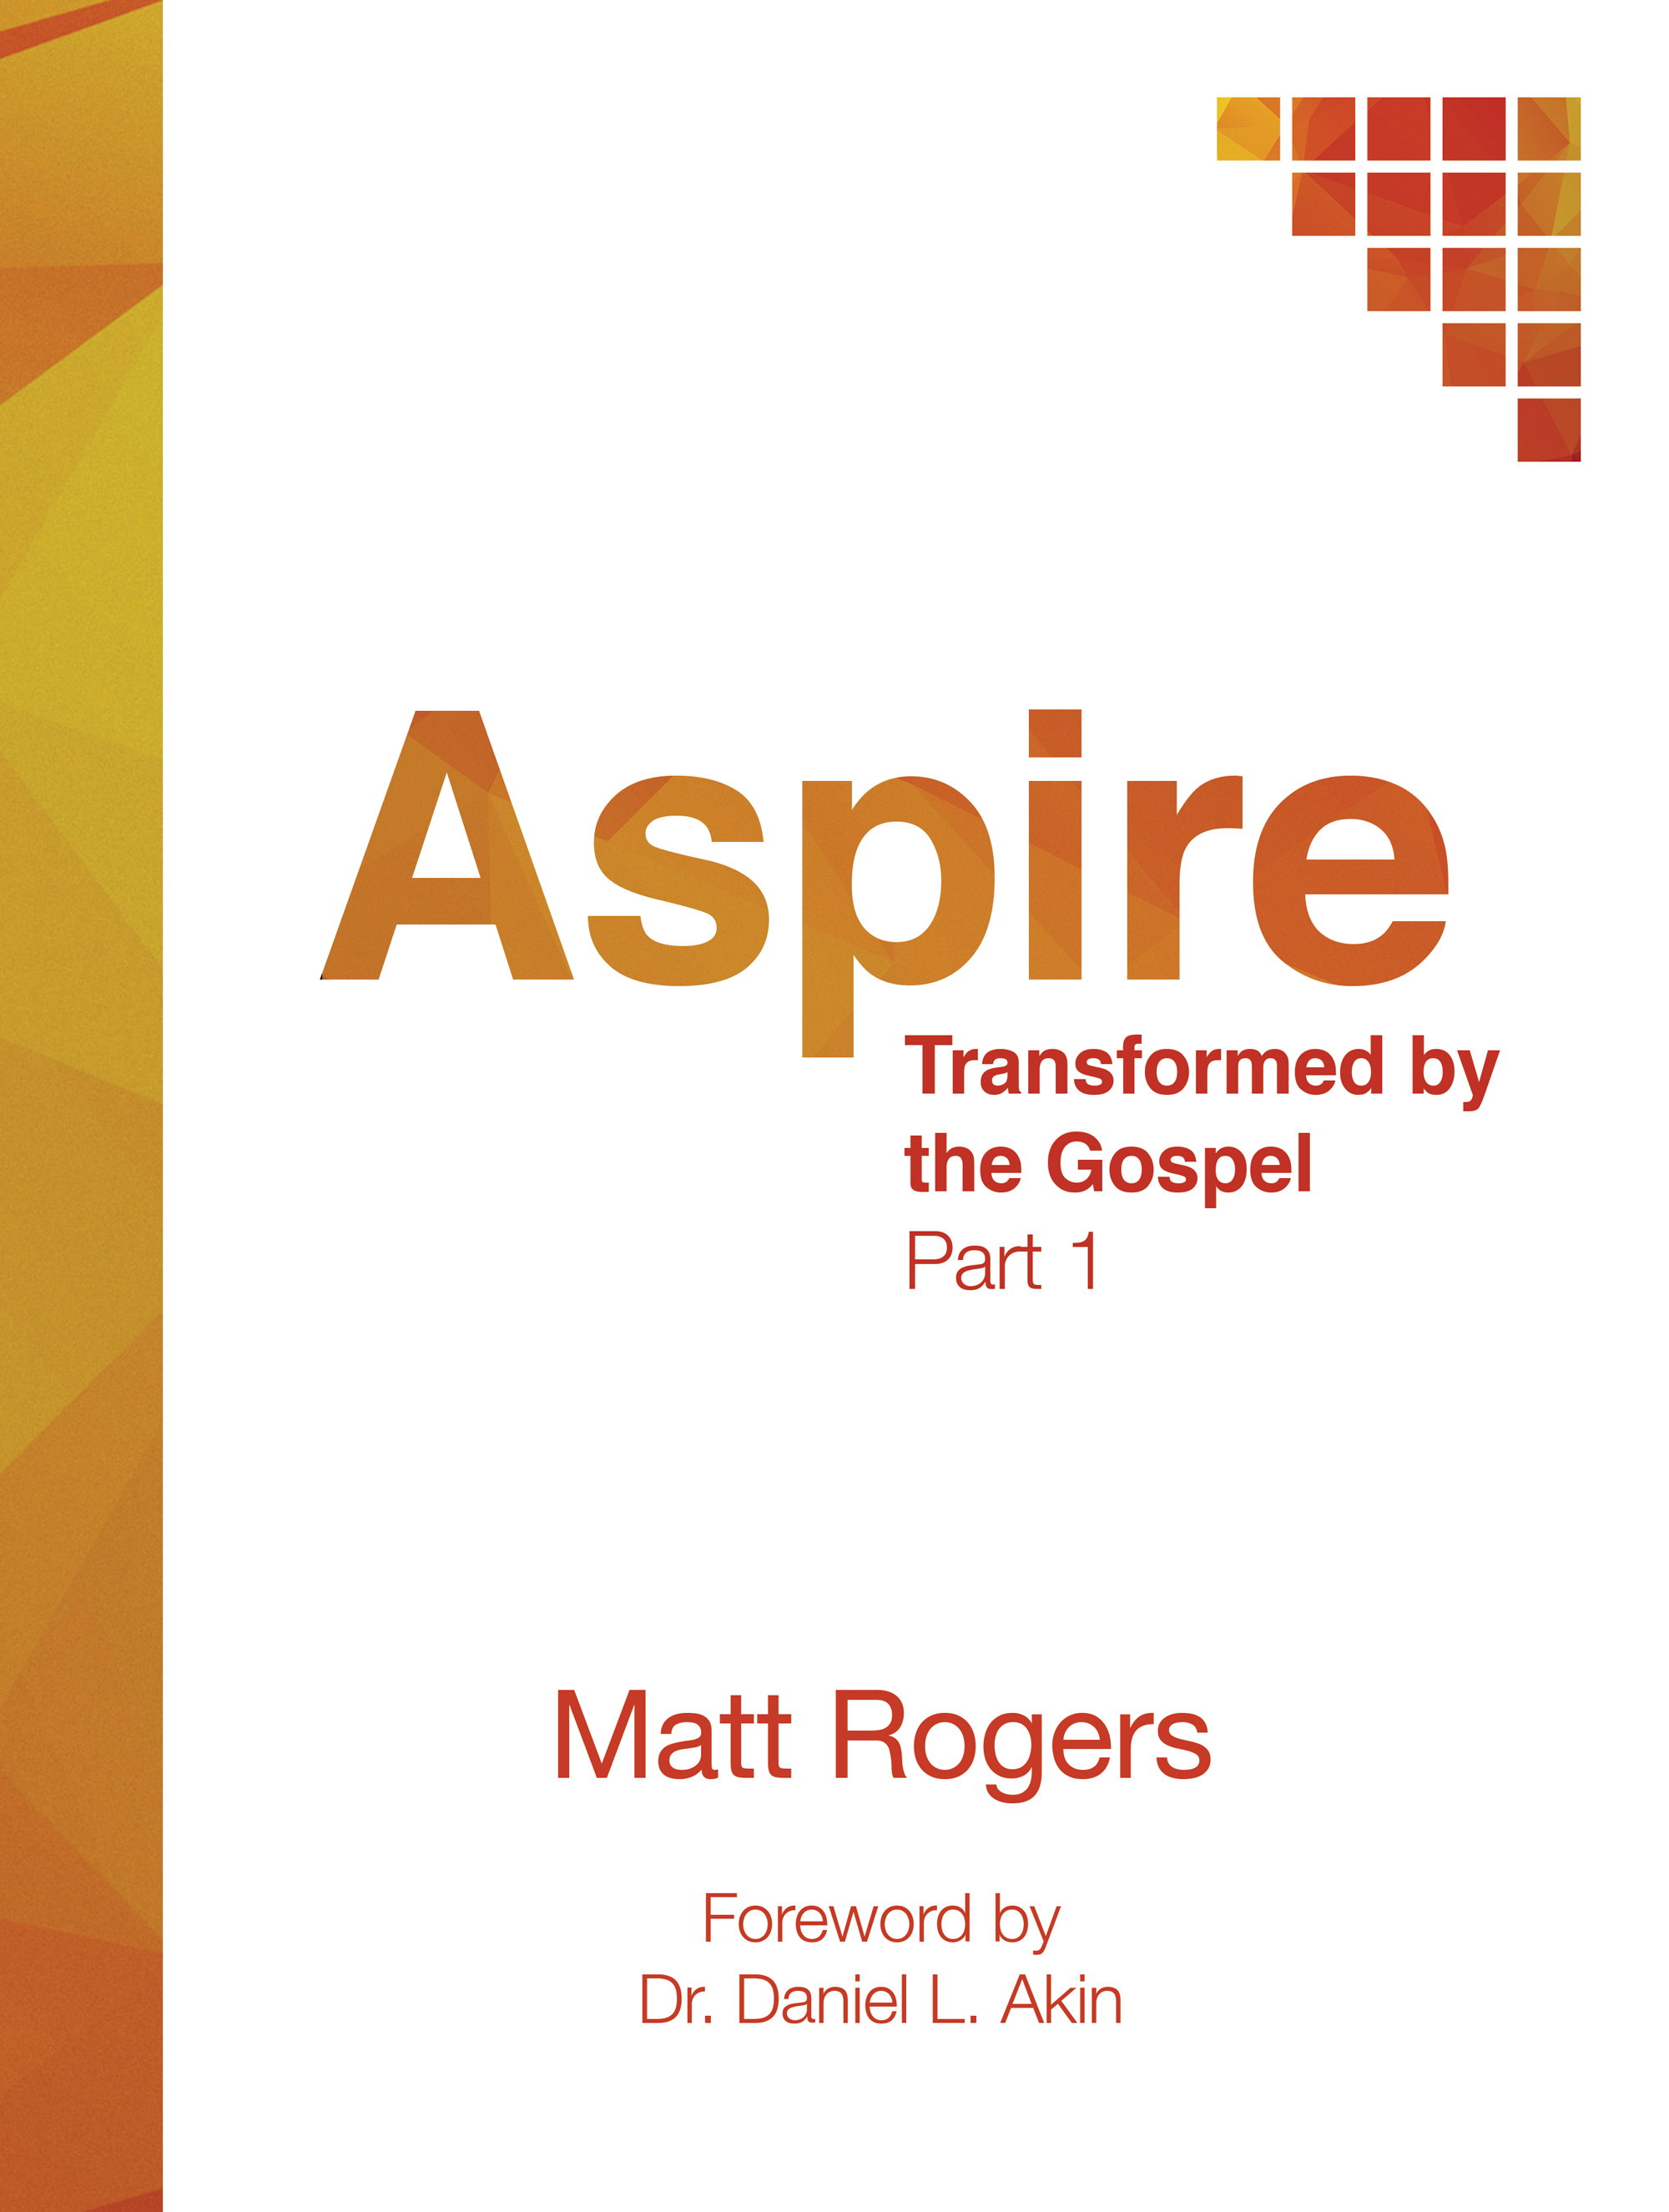 Aspire-Part1-Cover